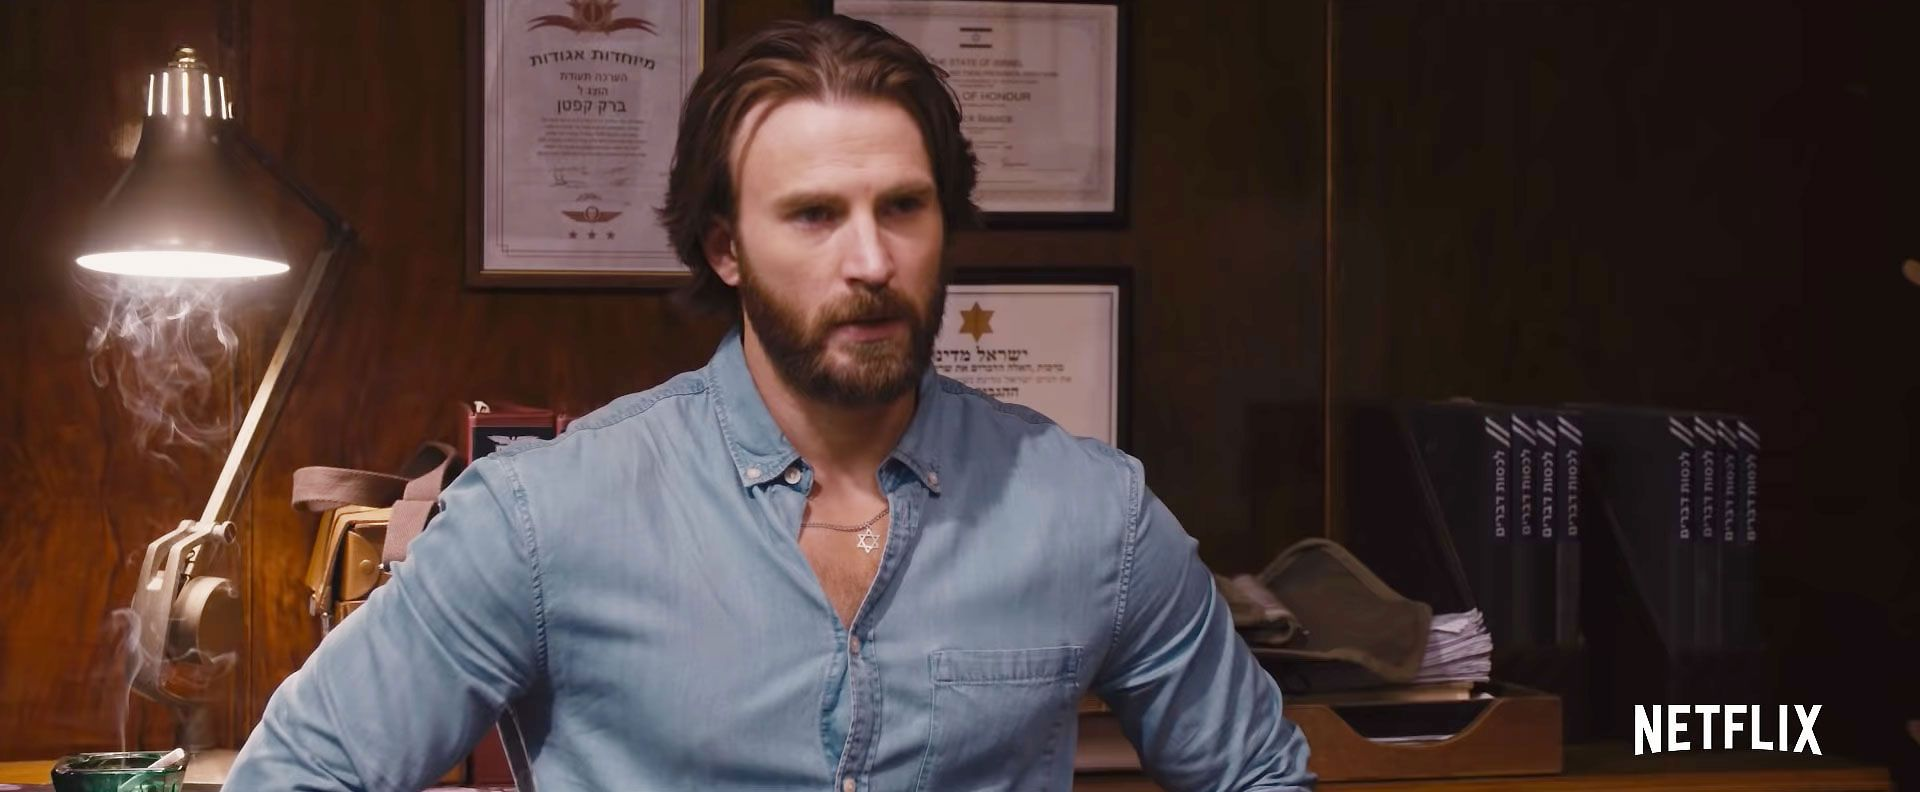 Avengers: Endgame star Chris Evans' beard is back in first trailer for Netflix's The Red Sea Diving Resort